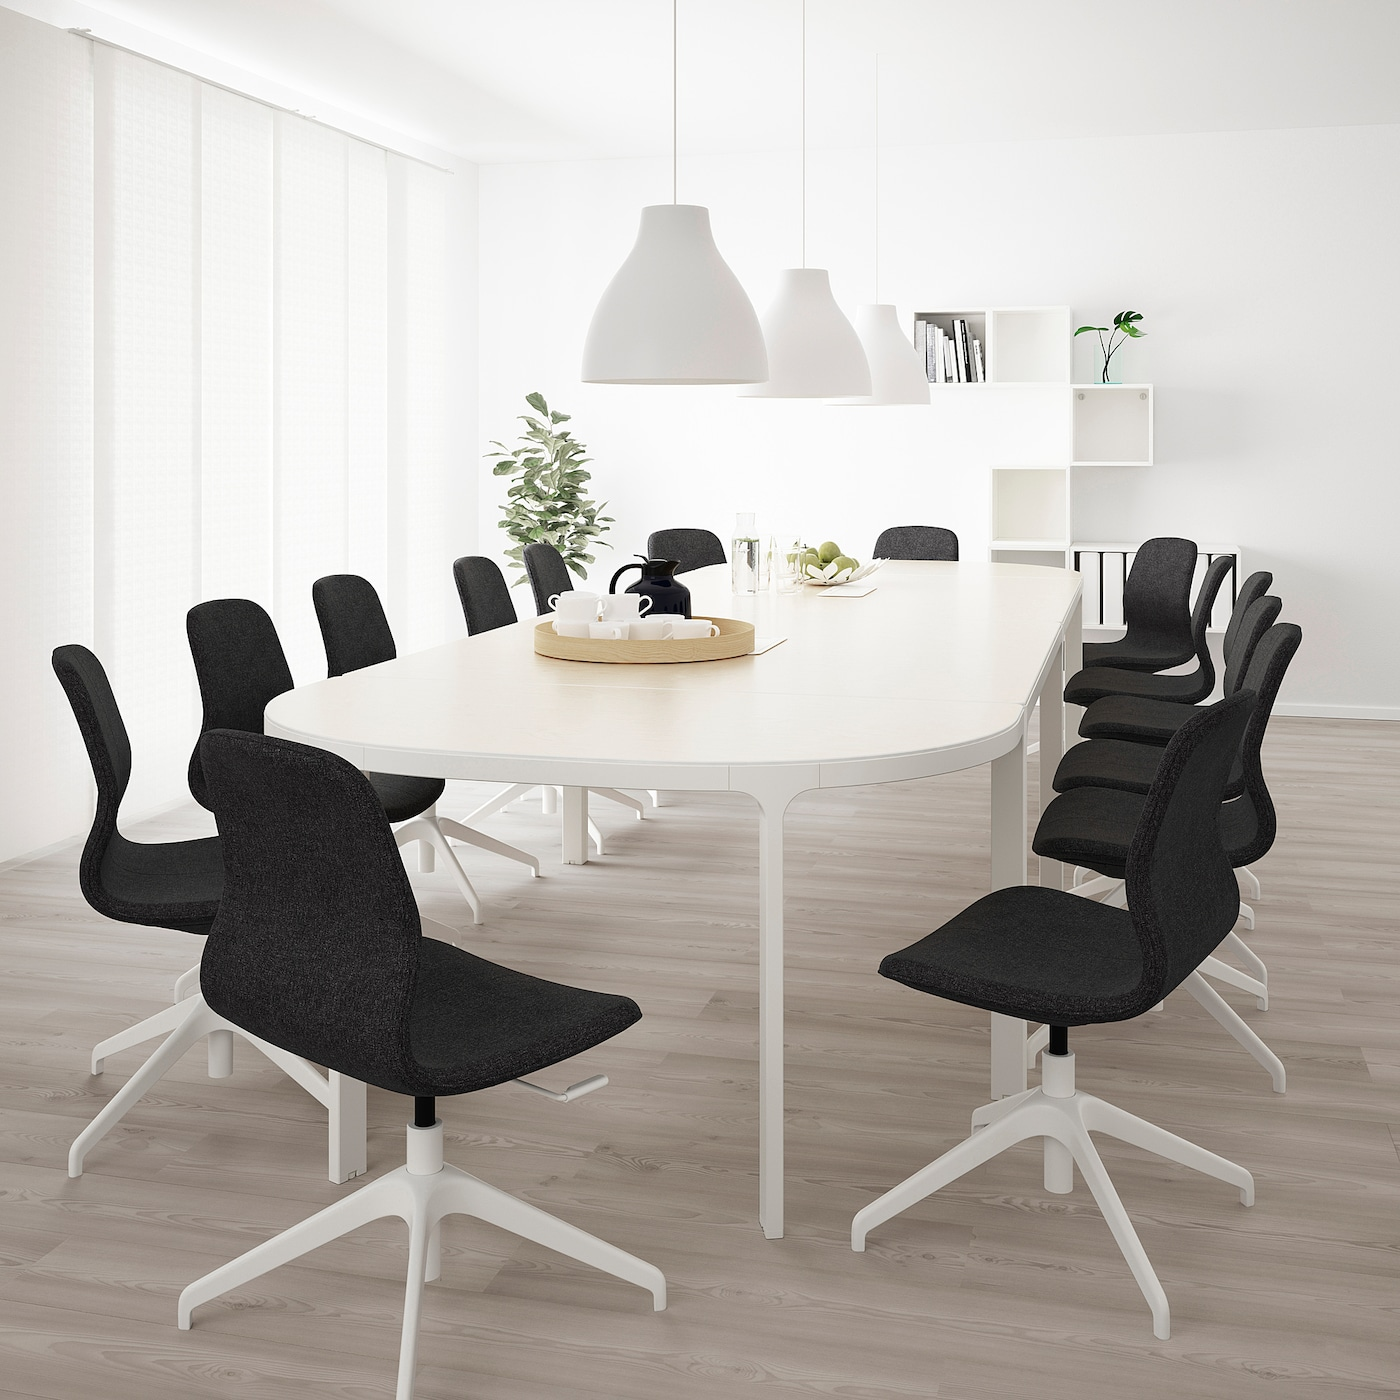 BEKANT Conference table, white, 420x140 cm